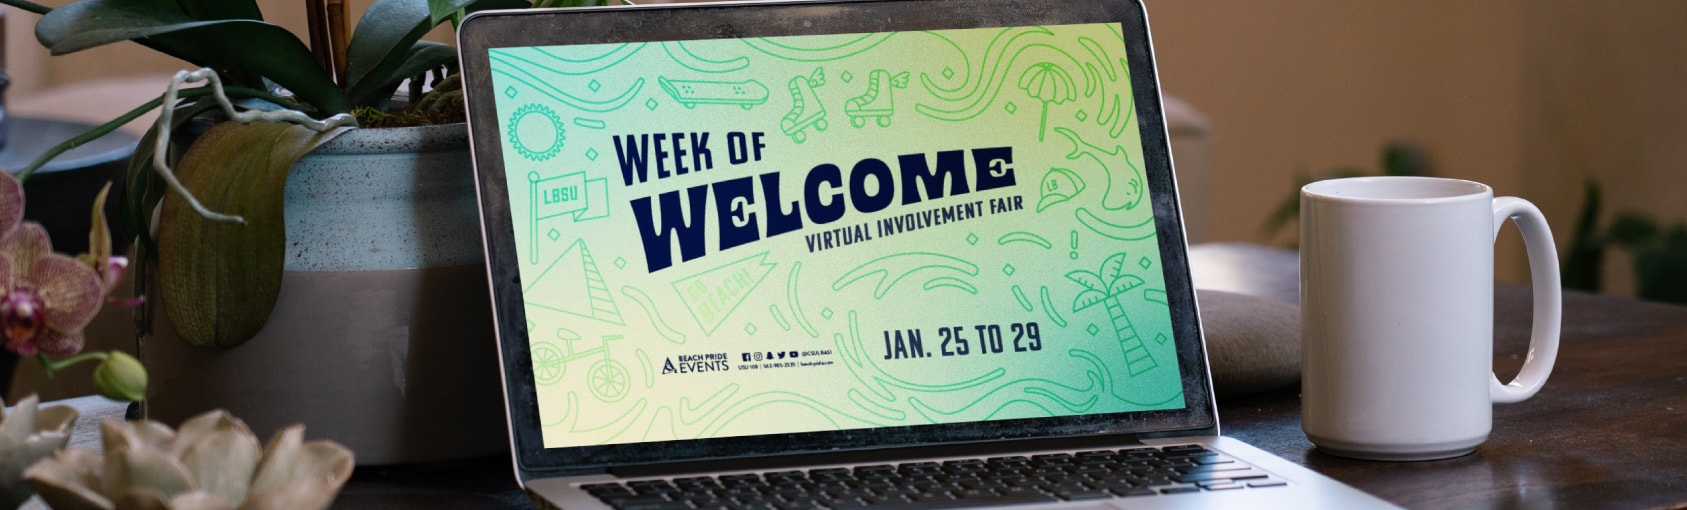 Graphic: Spring Week of Welcome